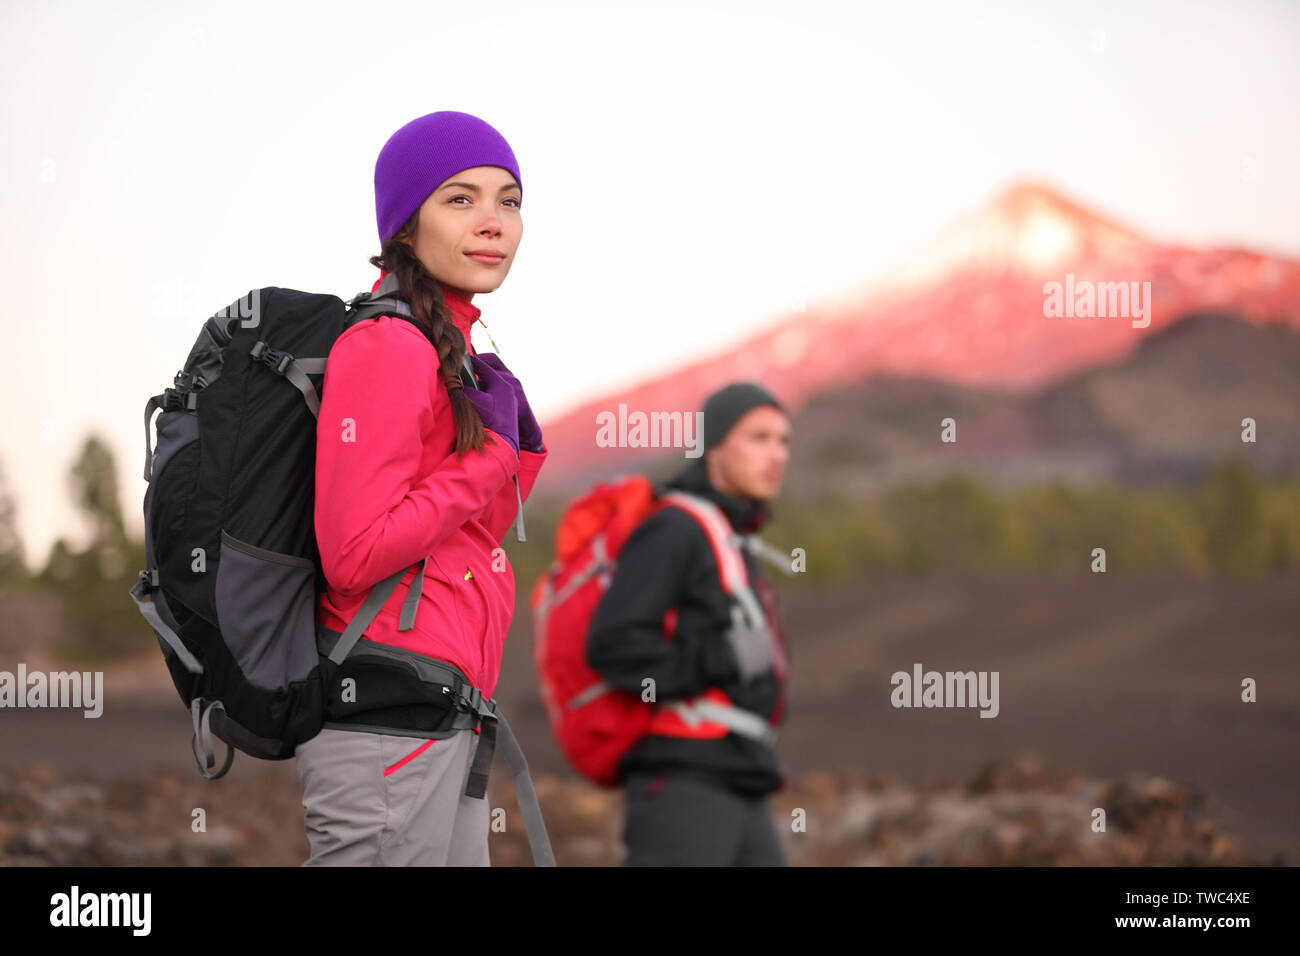 Hiking people on mountain. Hiker couple walking with backpack in high altitude mountains. Young woman hiker in focus trekking at sunset Tenerife, Canary Islands, Spain. - Stock Image